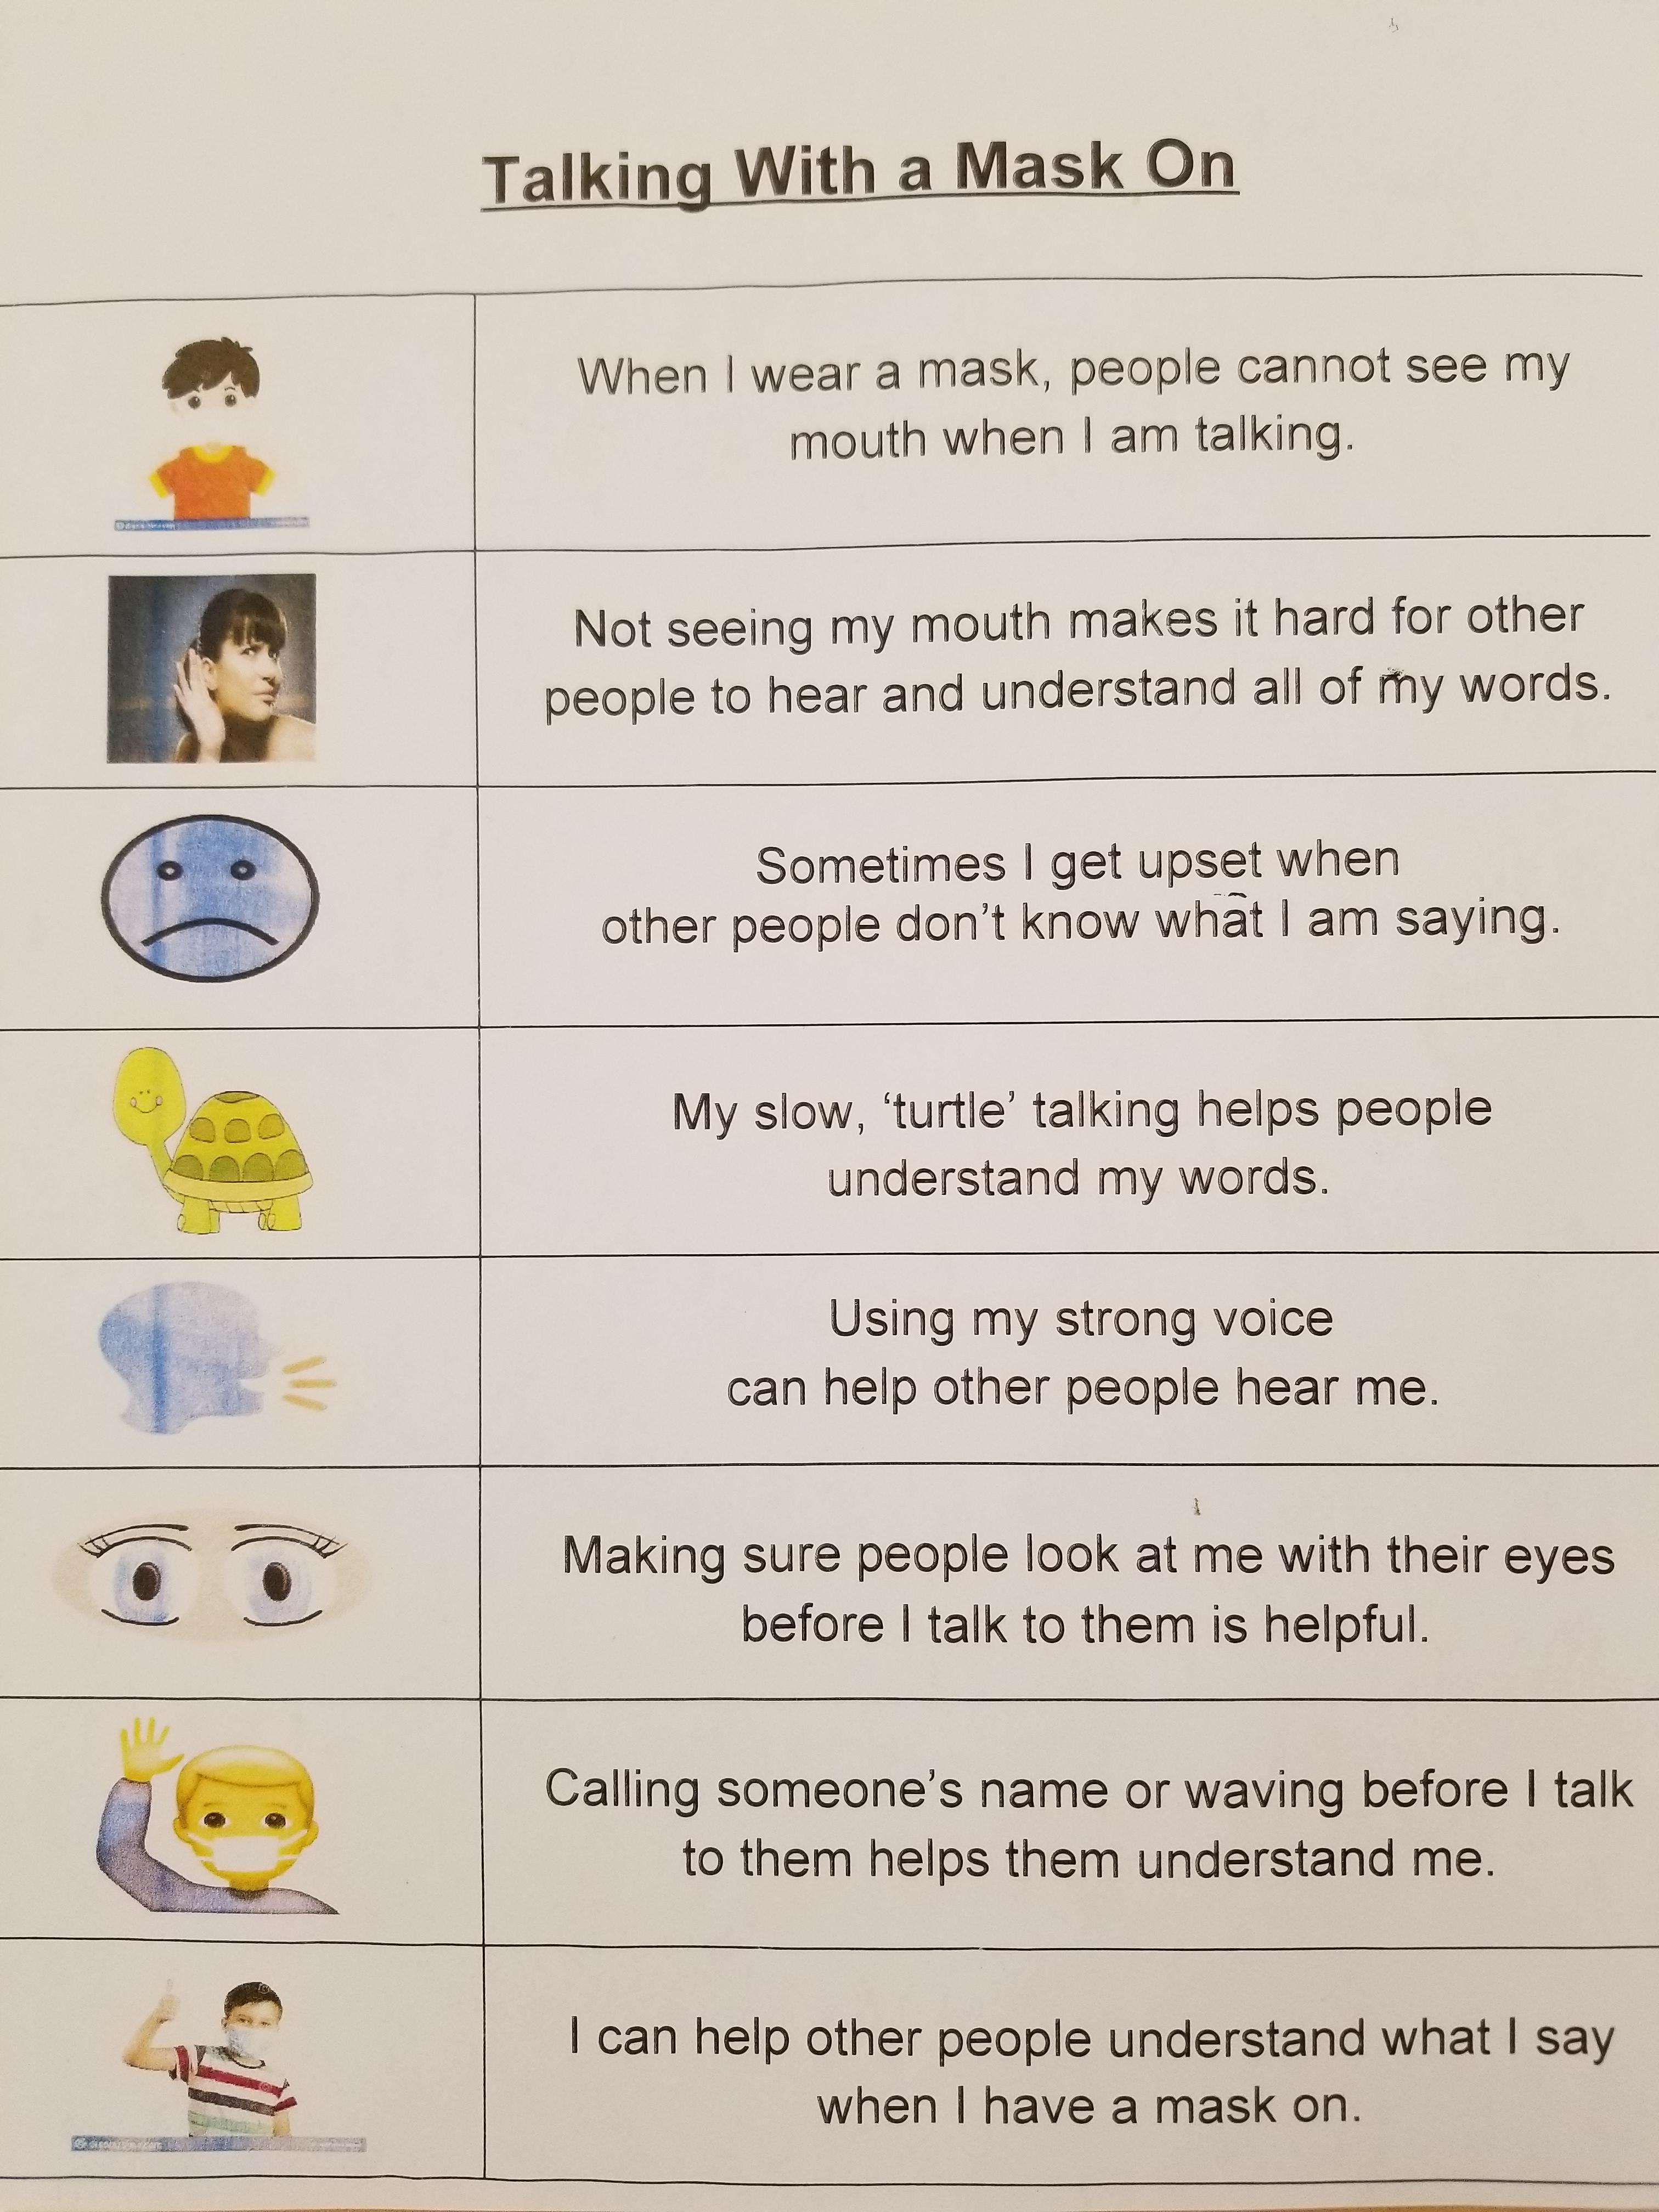 Guide for children's speech to be understood while wearing a mask